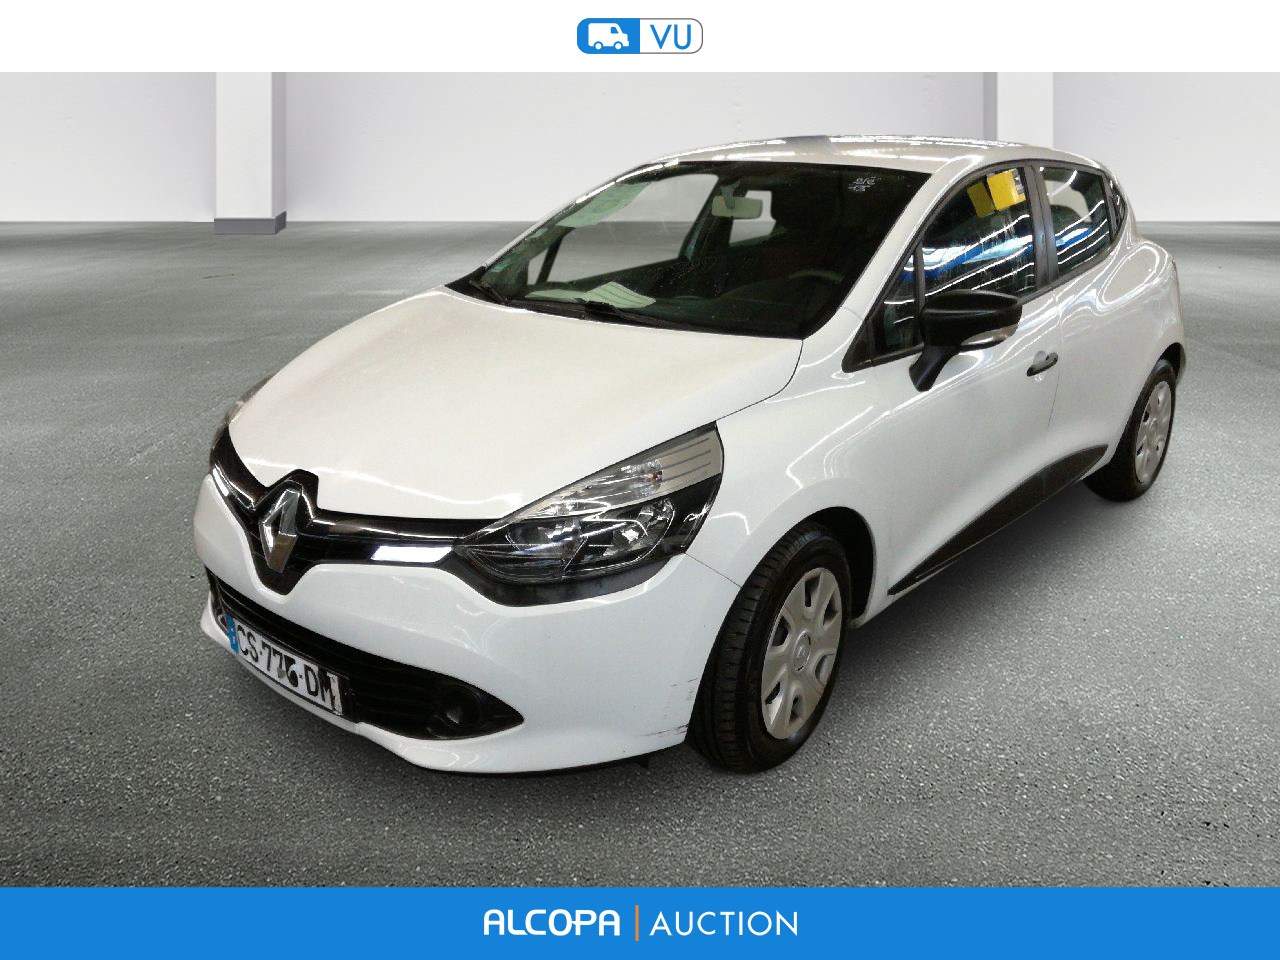 renault clio clio ste 1 5 dci 75 eco air alcopa auction. Black Bedroom Furniture Sets. Home Design Ideas